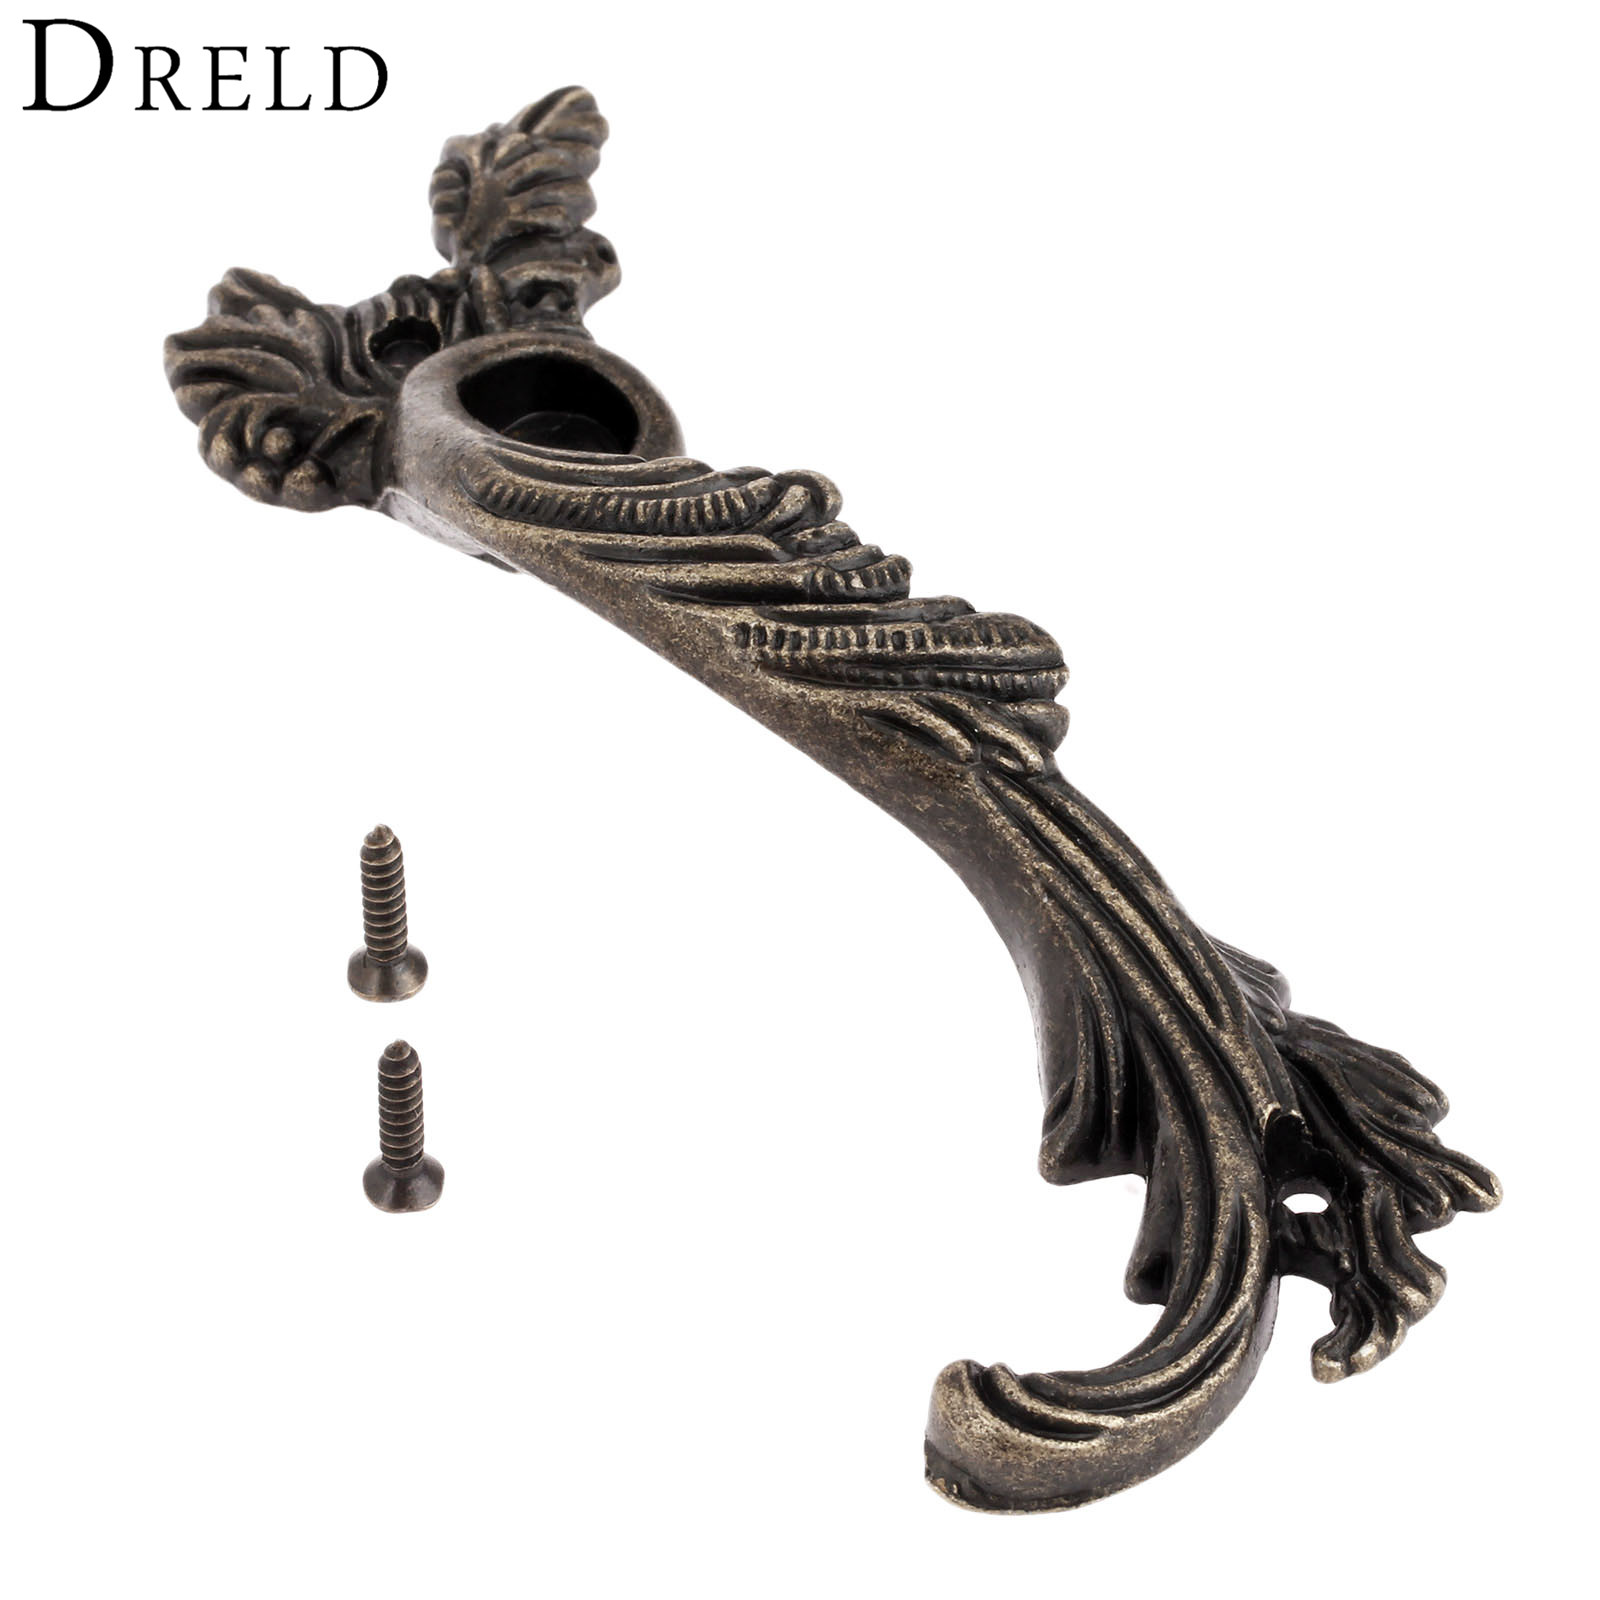 DRELD 1Pc Antique Furniture Handle Cabinet Knobs and Handles Drawer Kitchen Cupboard Vintage Pull Handle Furniture Fittings 98mm dreld furniture handle modern cabinet knobs and handles door cupboard drawer pull handle for kitchen bedroom furniture hardware